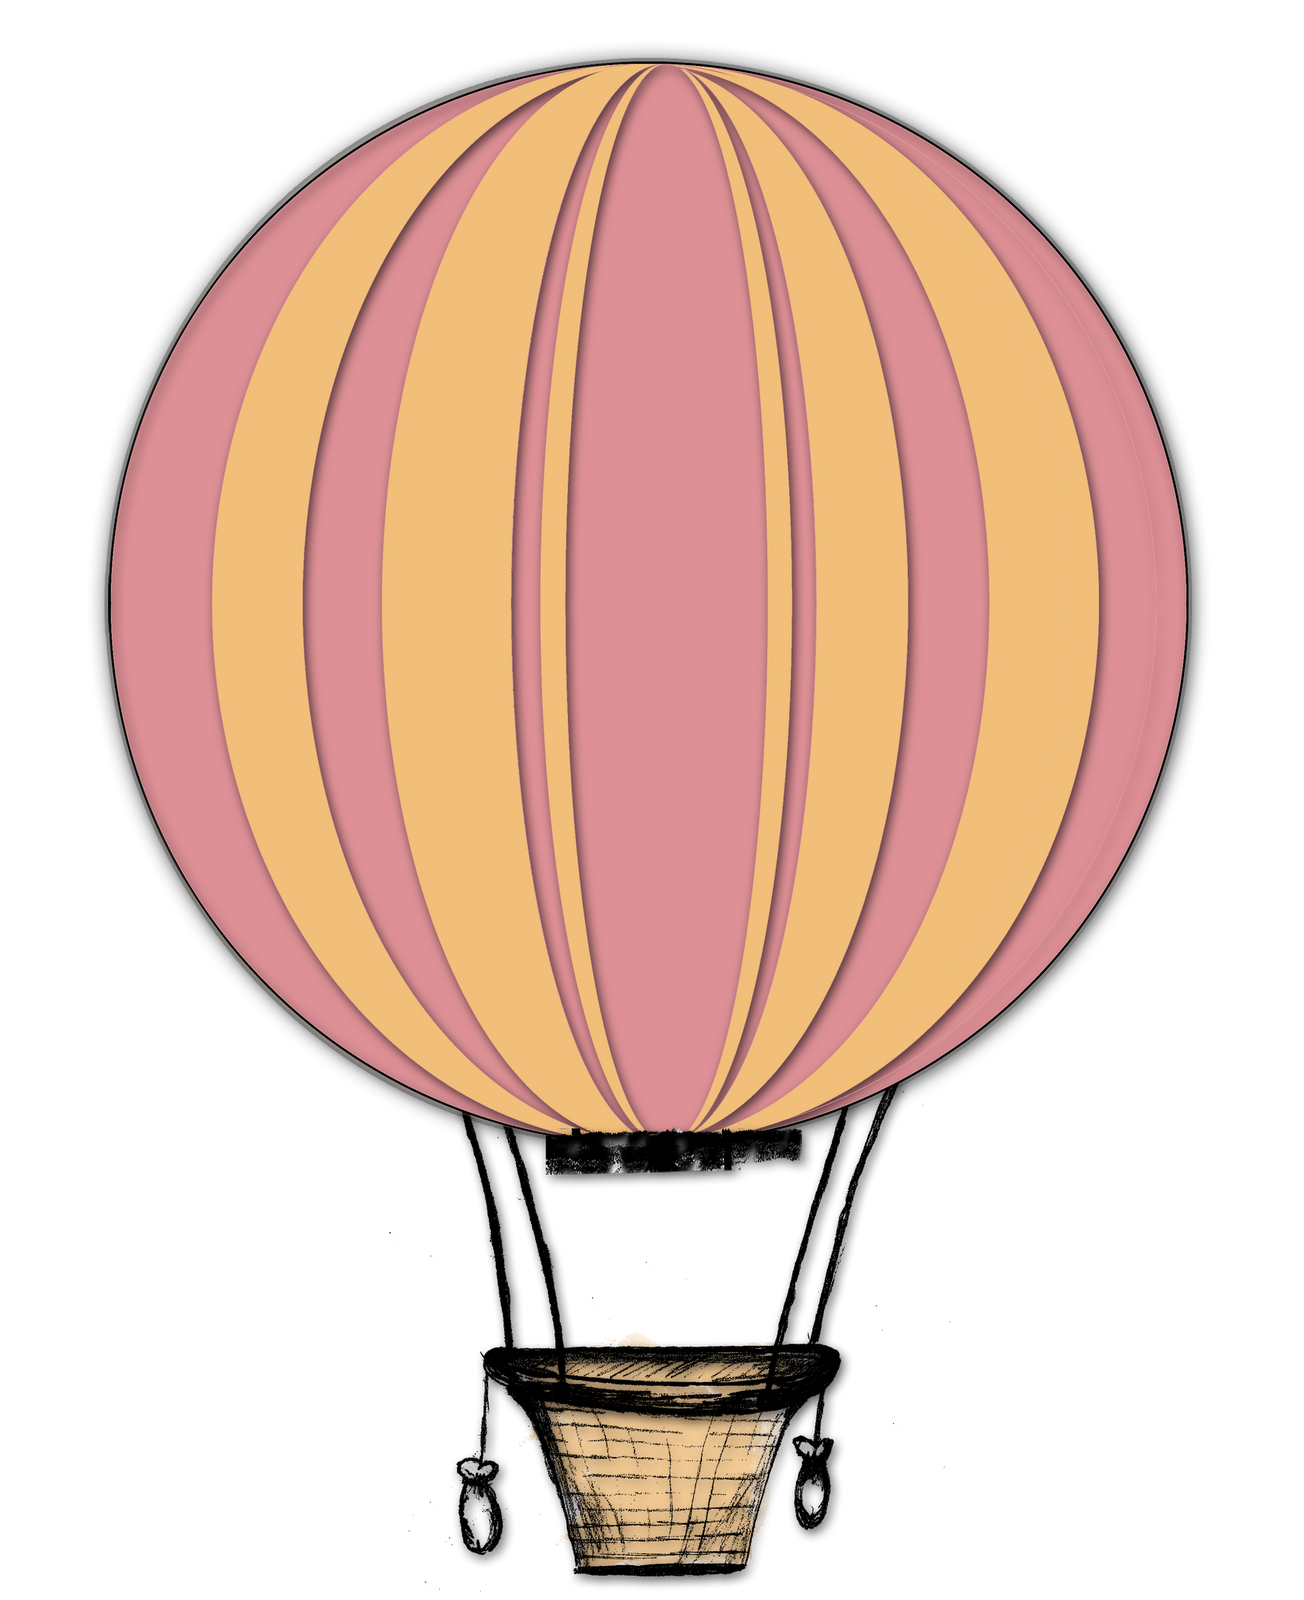 Clipart free hot air balloon. Eridoodle designs and creations